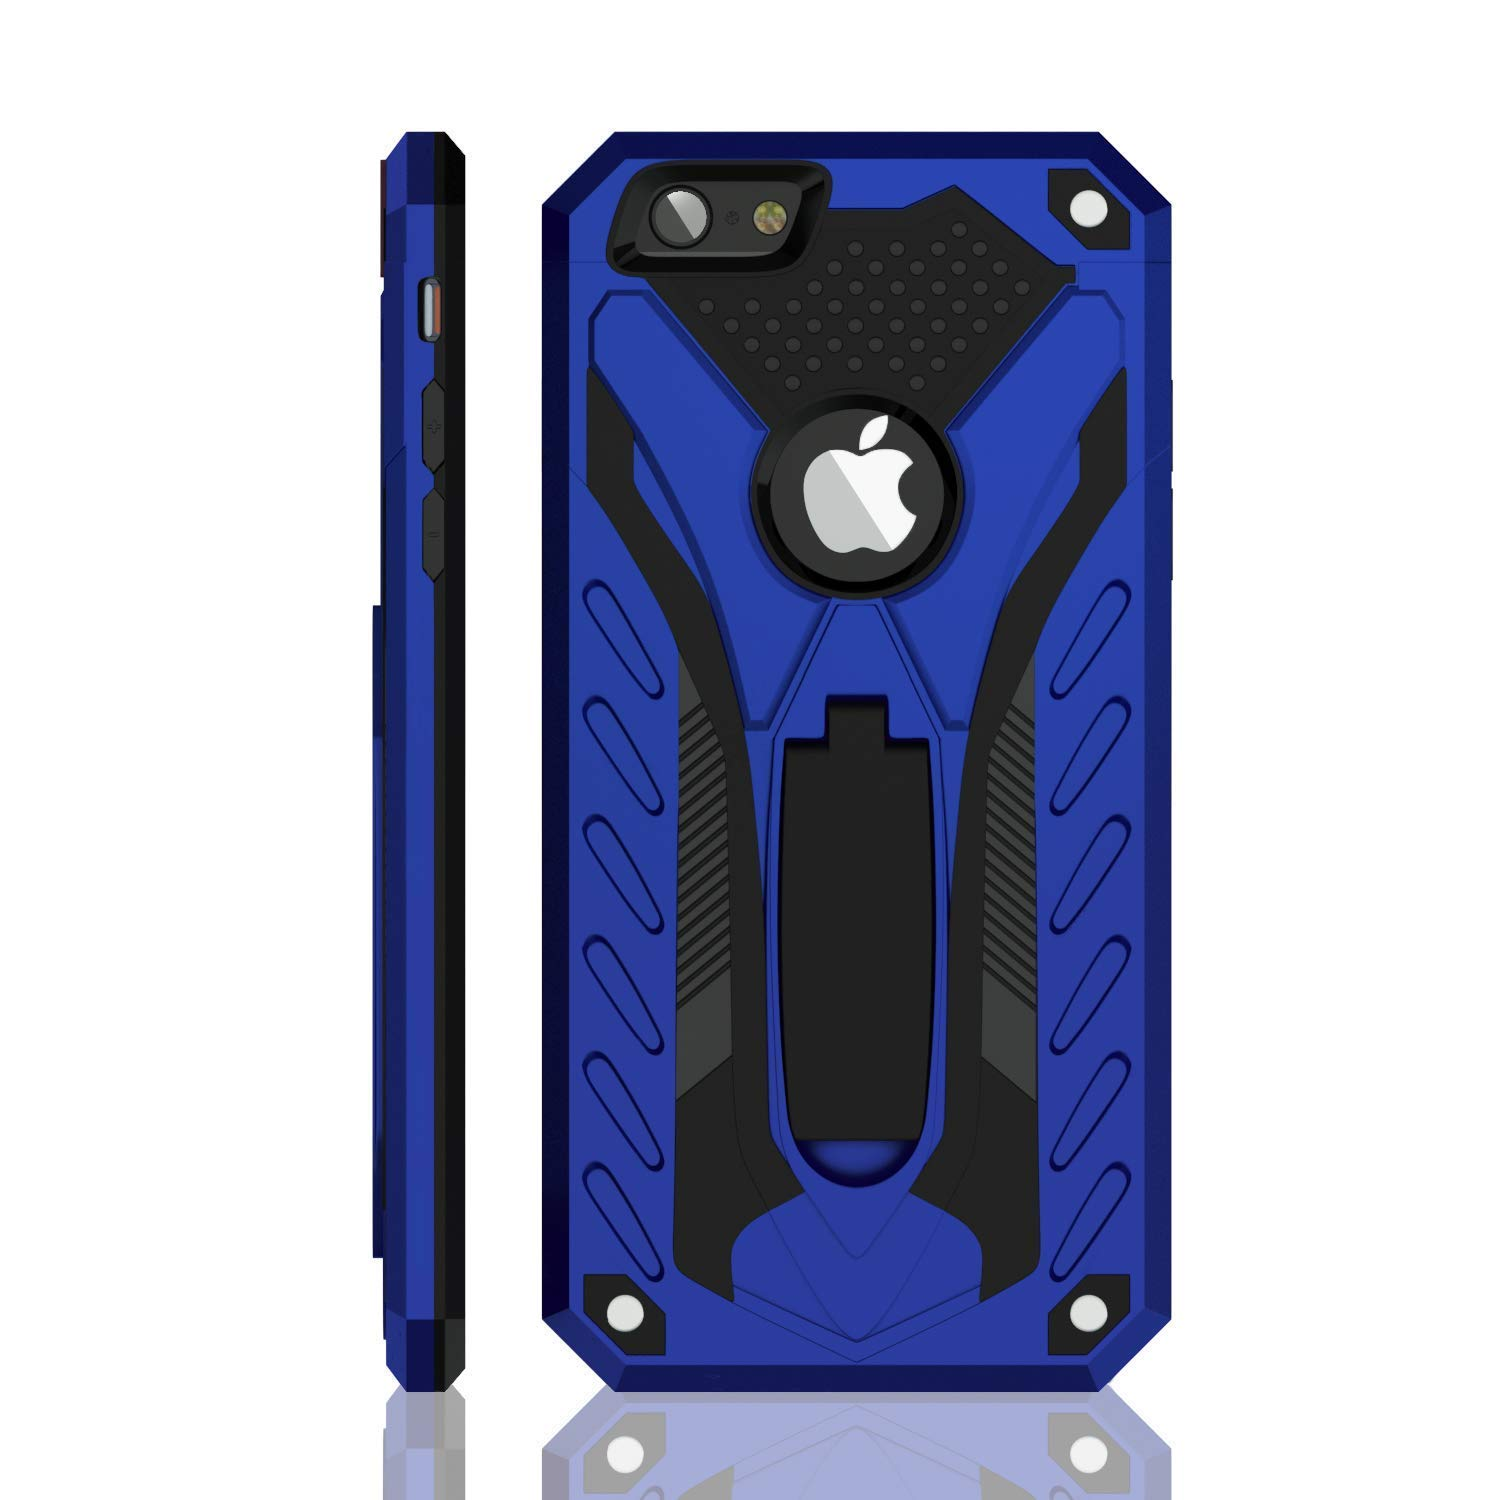 iPhone 6 Plus Case | iPhone 6S Plus Case | Military Grade | 12ft. Drop Tested Protective Case | Kickstand | Compatible with Apple iPhone 6 Plus/iPhone 6S Plus - Blue